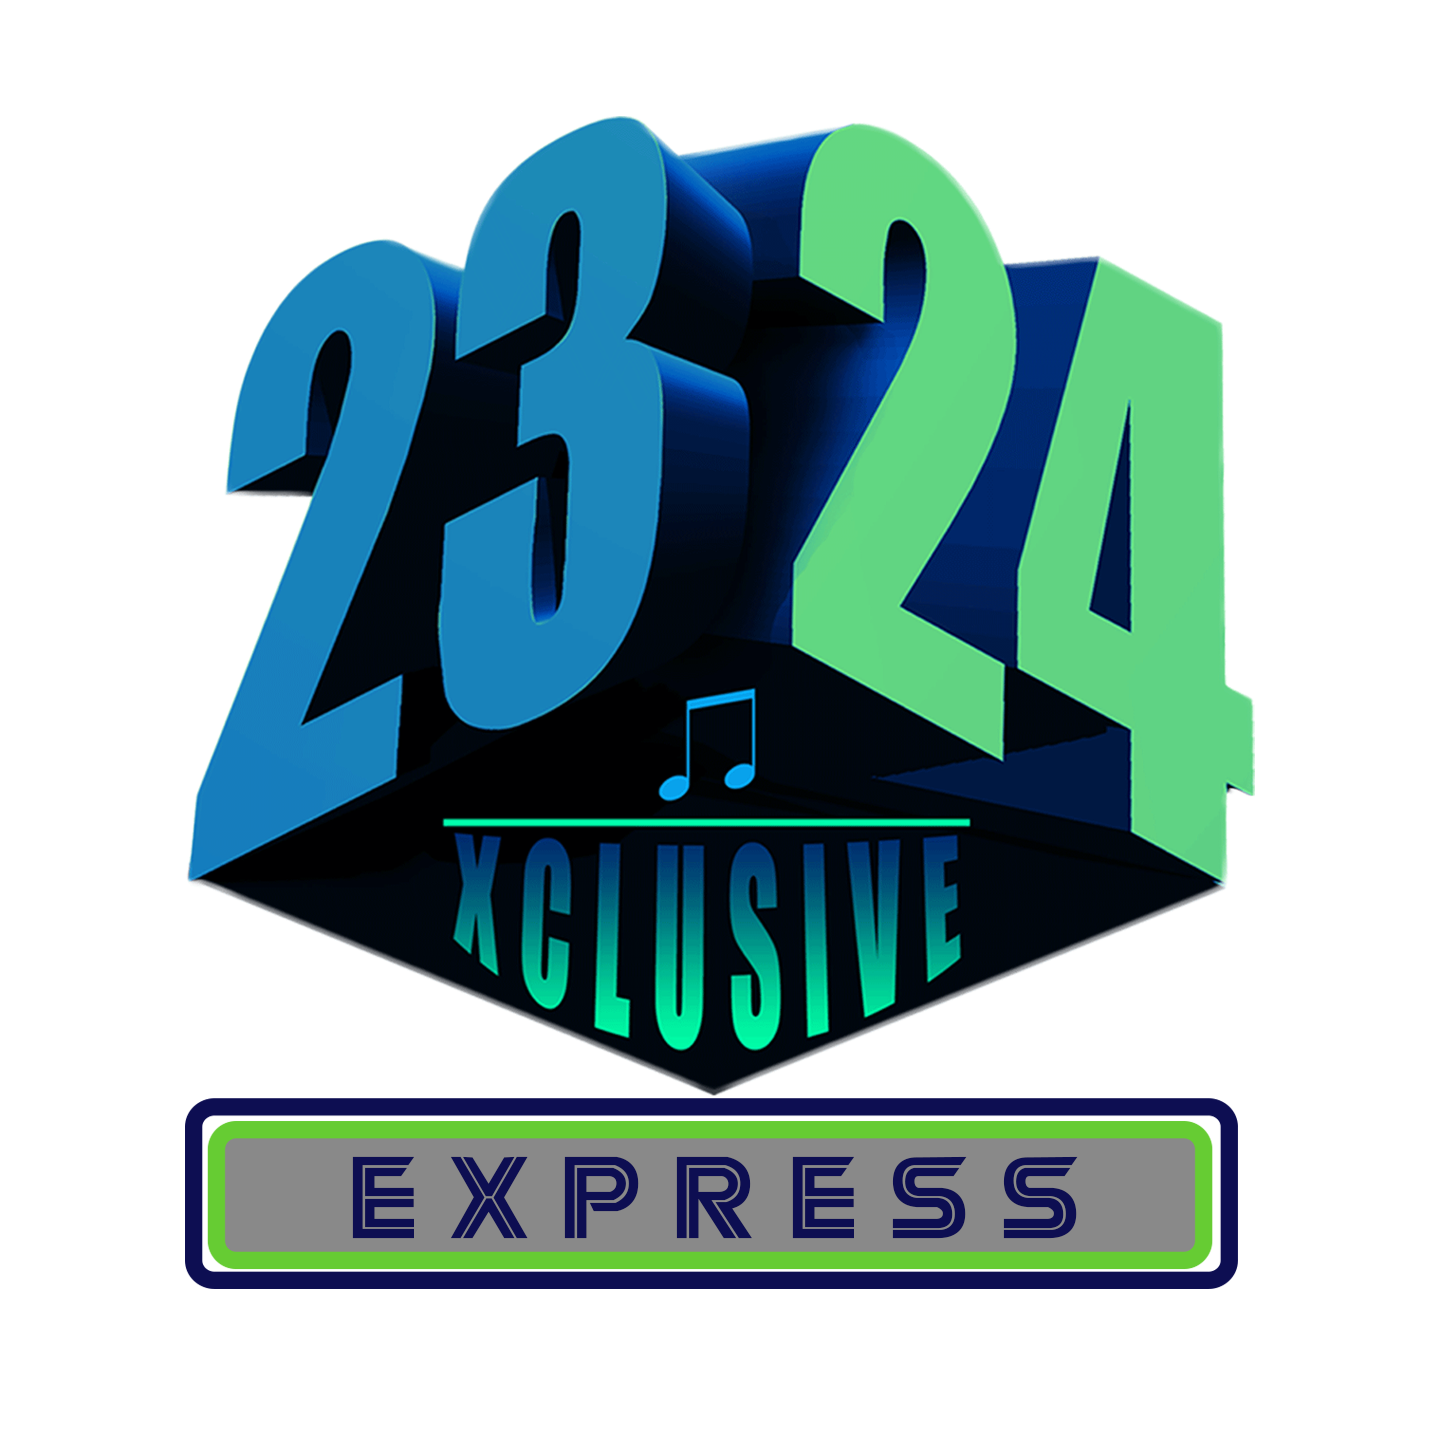 2324Xclusive Express